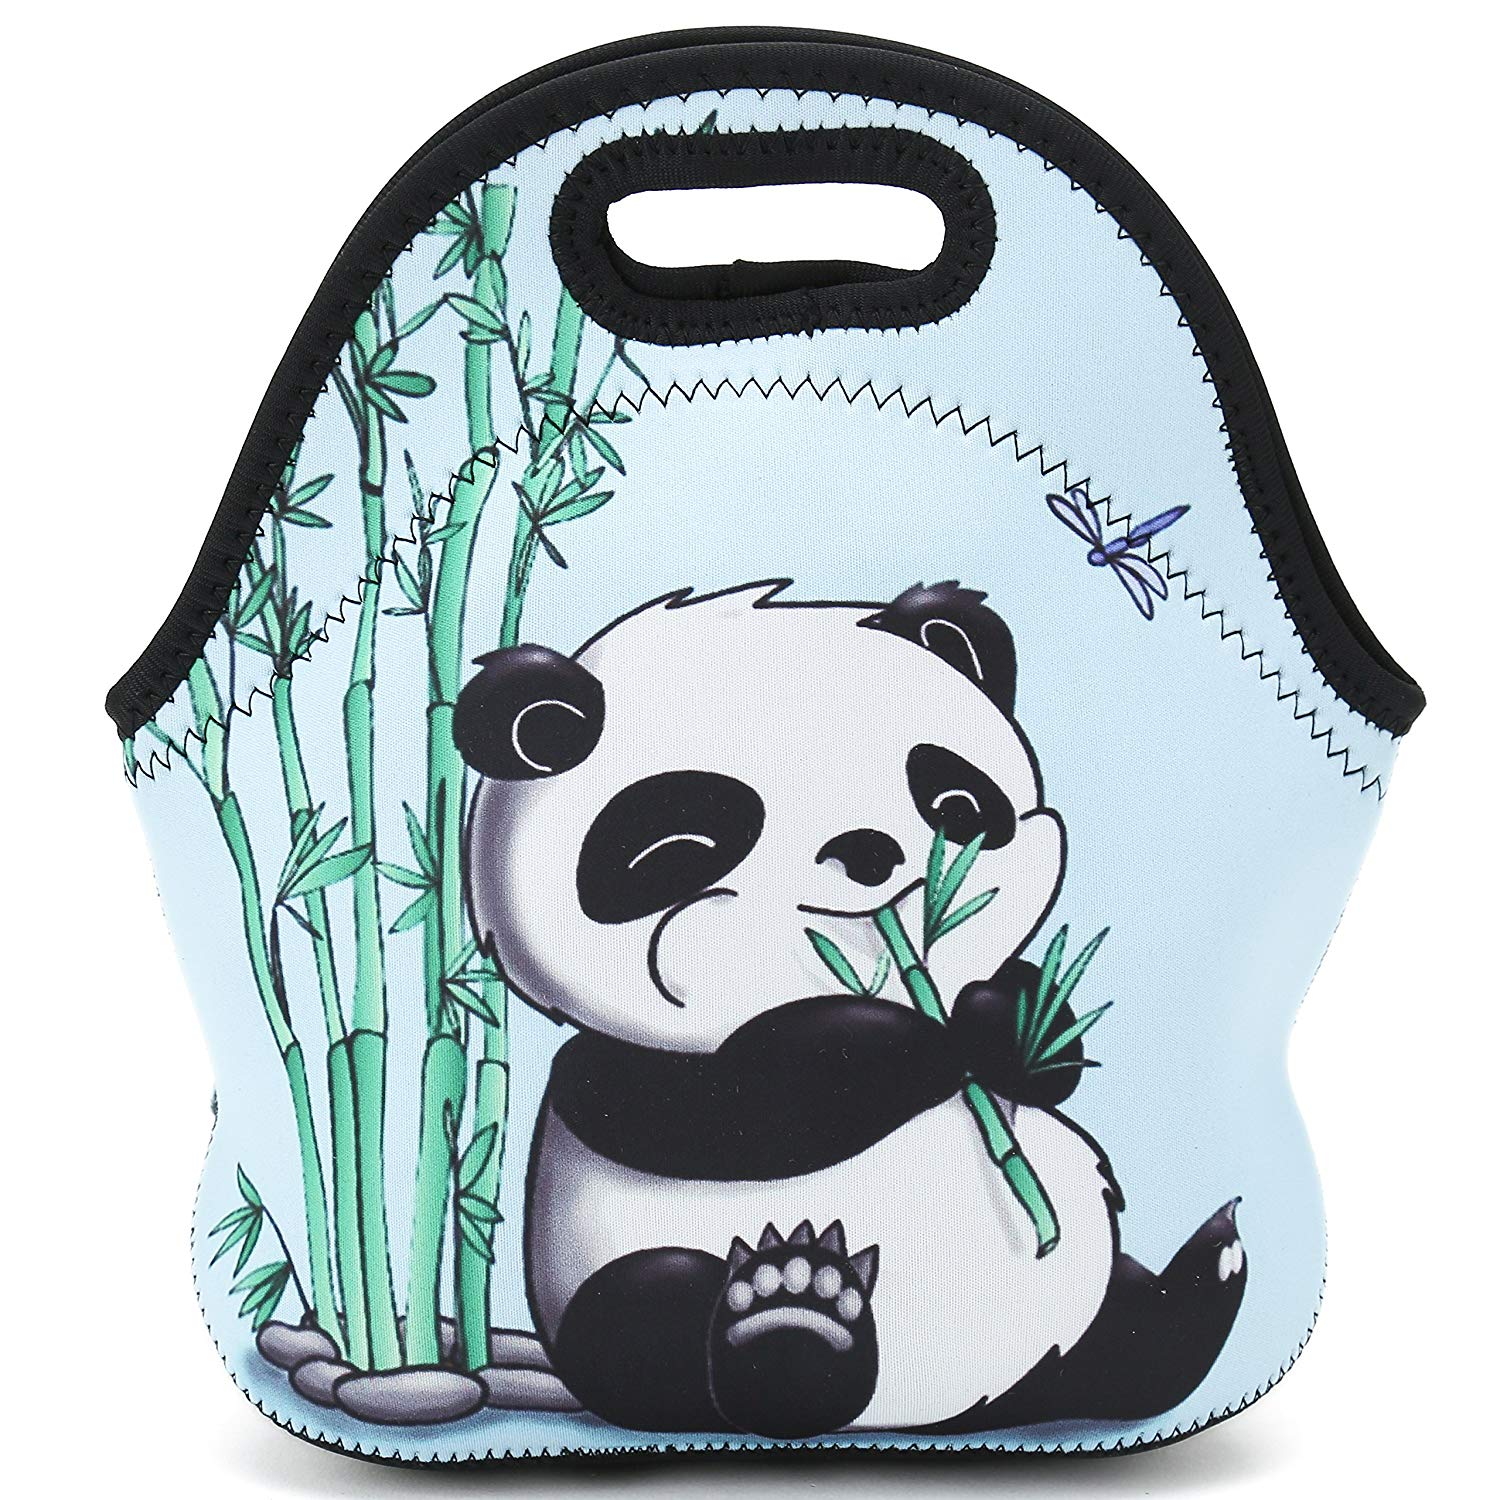 Neoprene Insulated Lunch tote by Baocool: